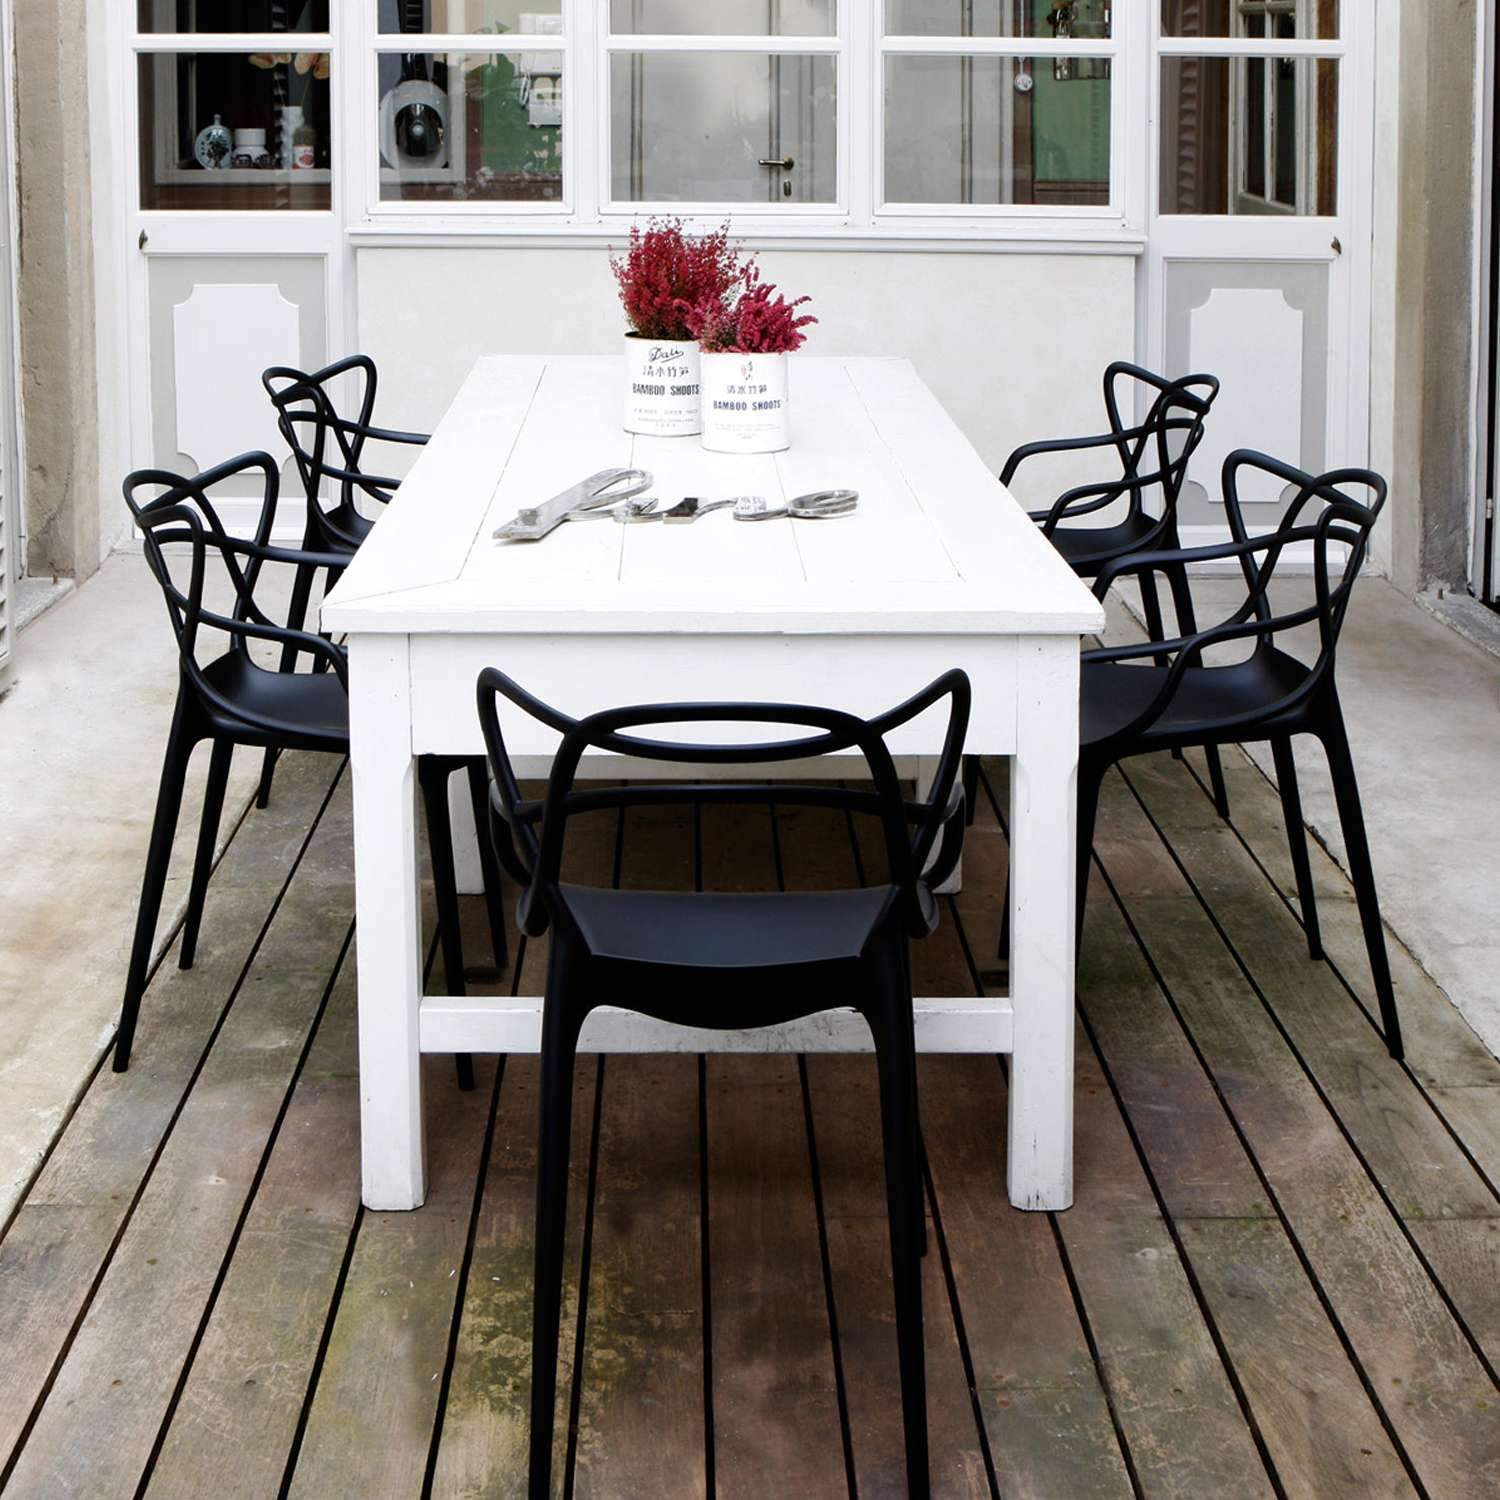 Black Replica Masters Chairs with a table setting